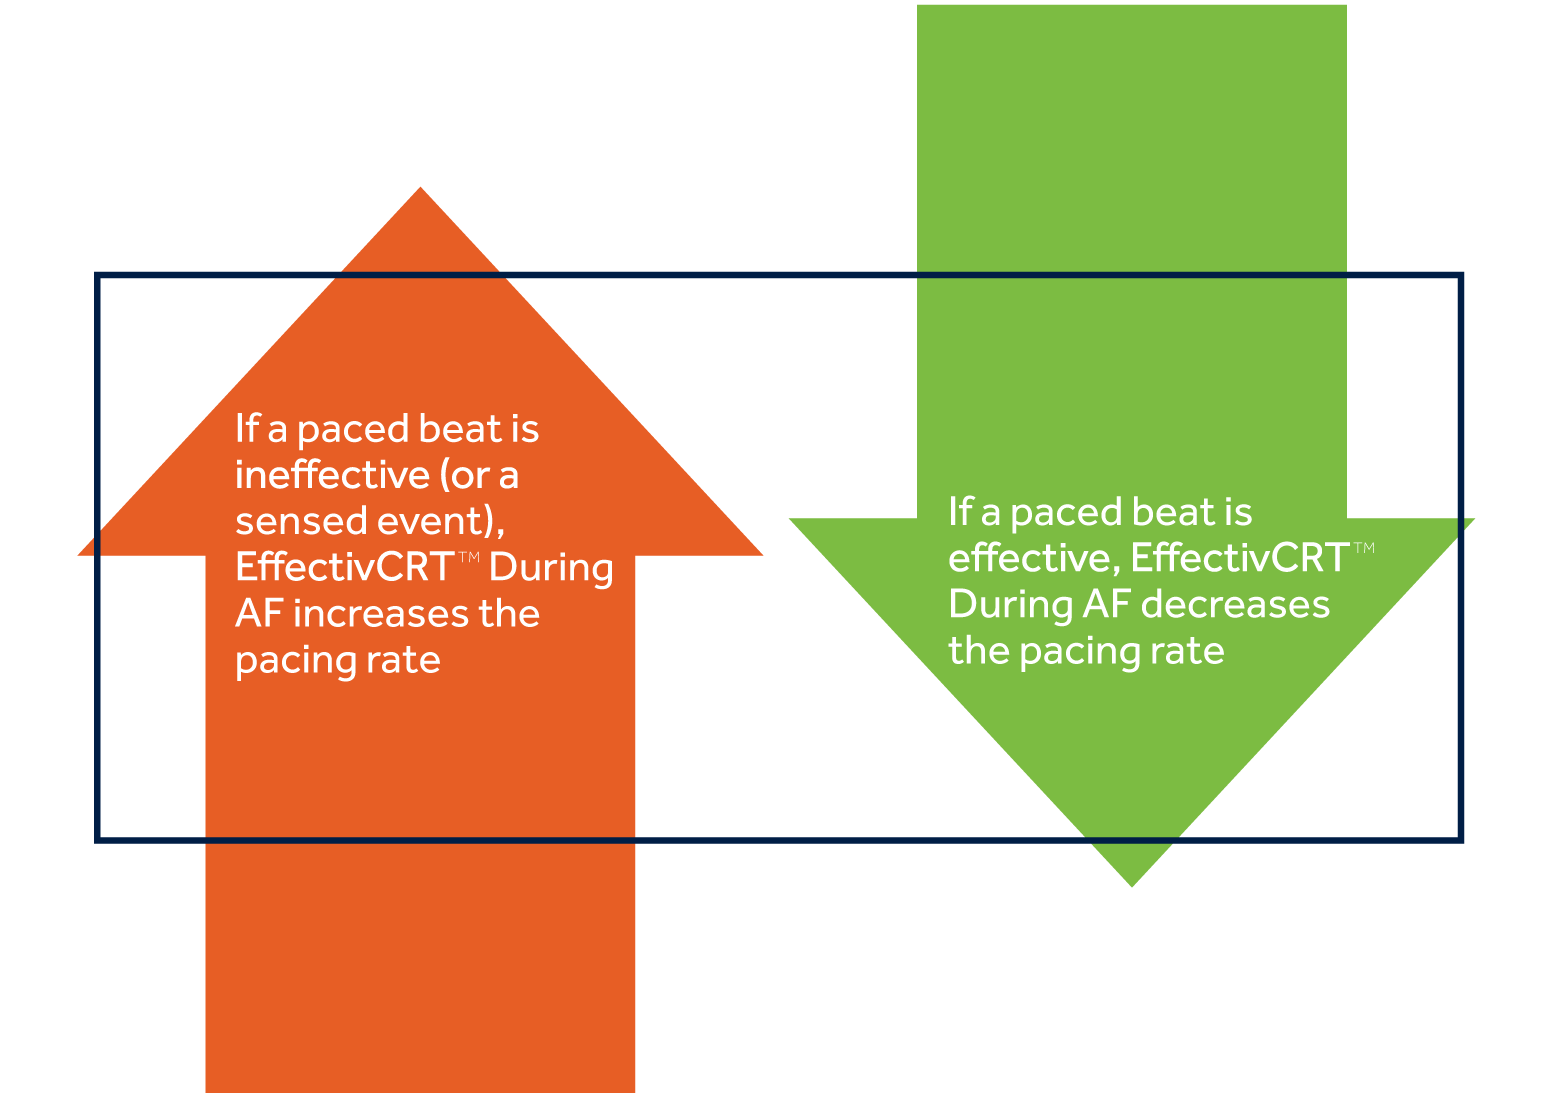 Image of how EffectivCRT™ During AF works. If a paced beat is ineffective (or a sensed event), EffectivCRT™ During AF increases the pacing rate. If a paced beat is effective, EffectivCRT™ During AF decreases the pacing rate.